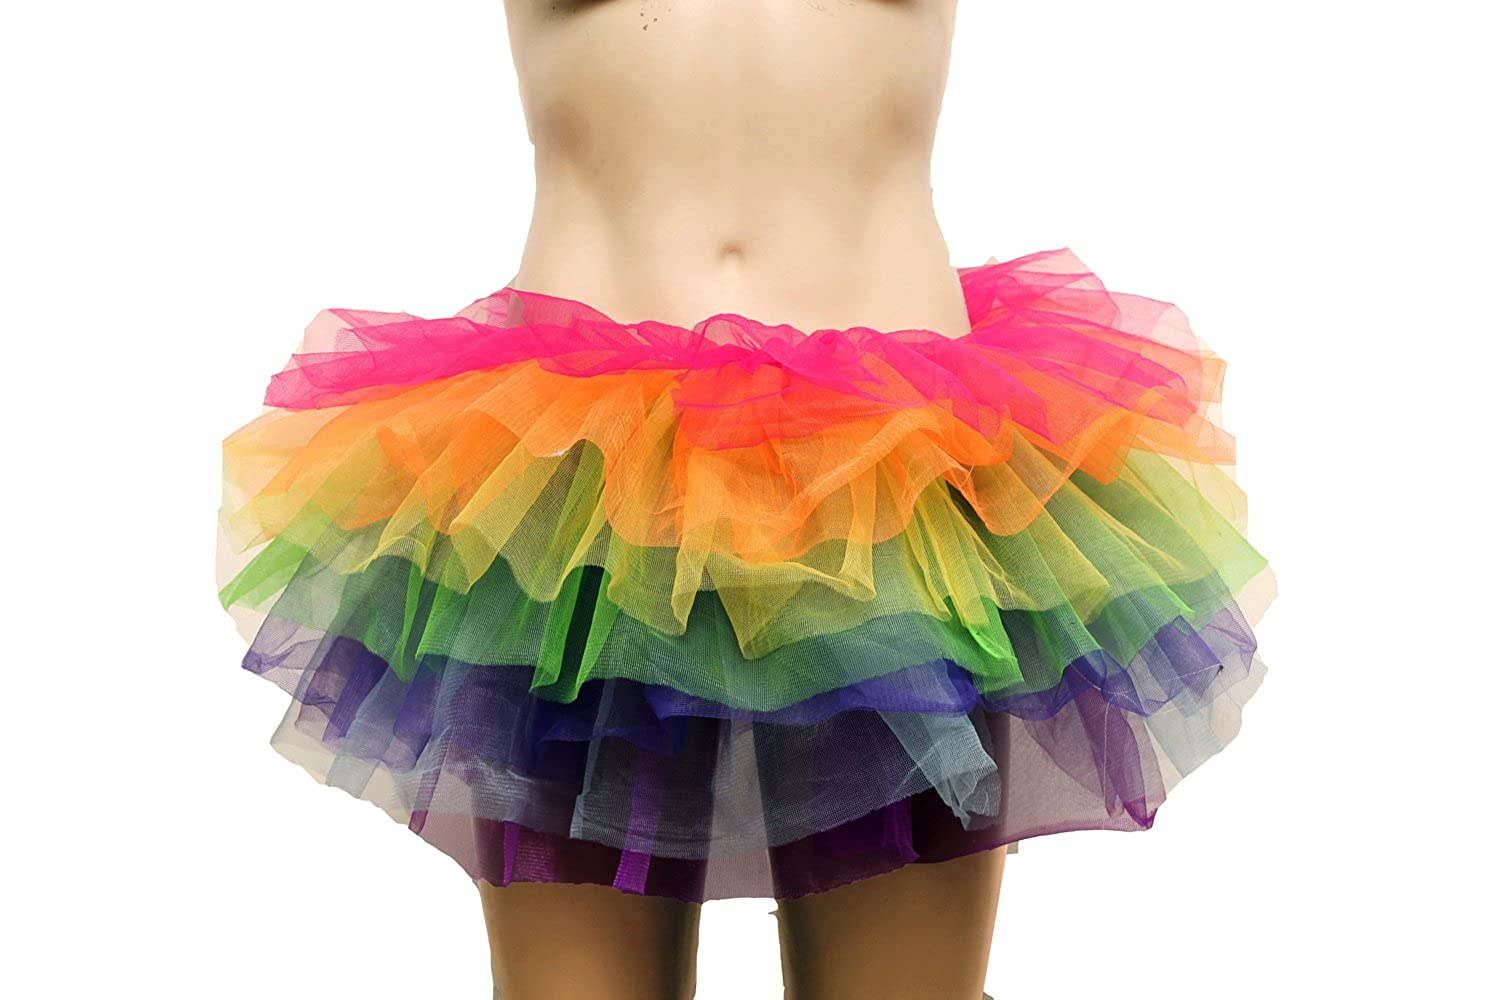 Blidece Basic Tutu Skirt for Women - 18 Colors Available BA001-849